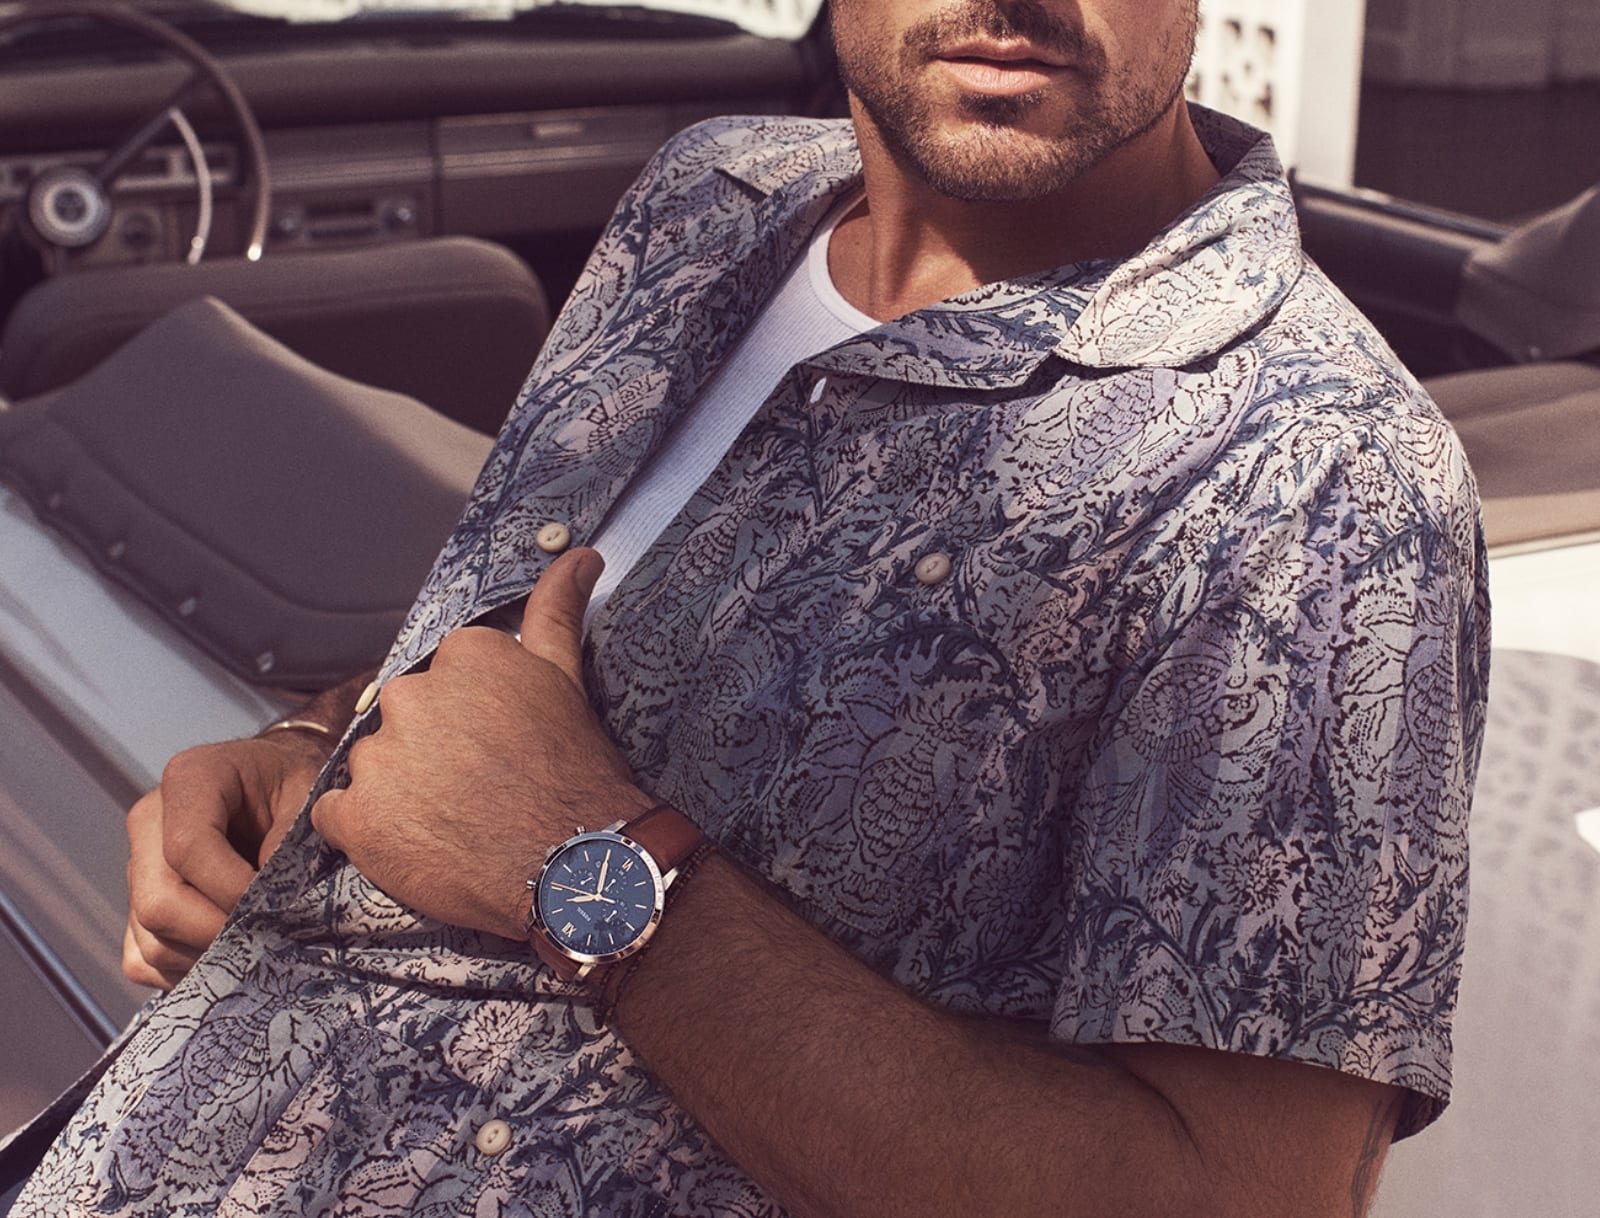 Man in patterned shirt with brown leather watch.